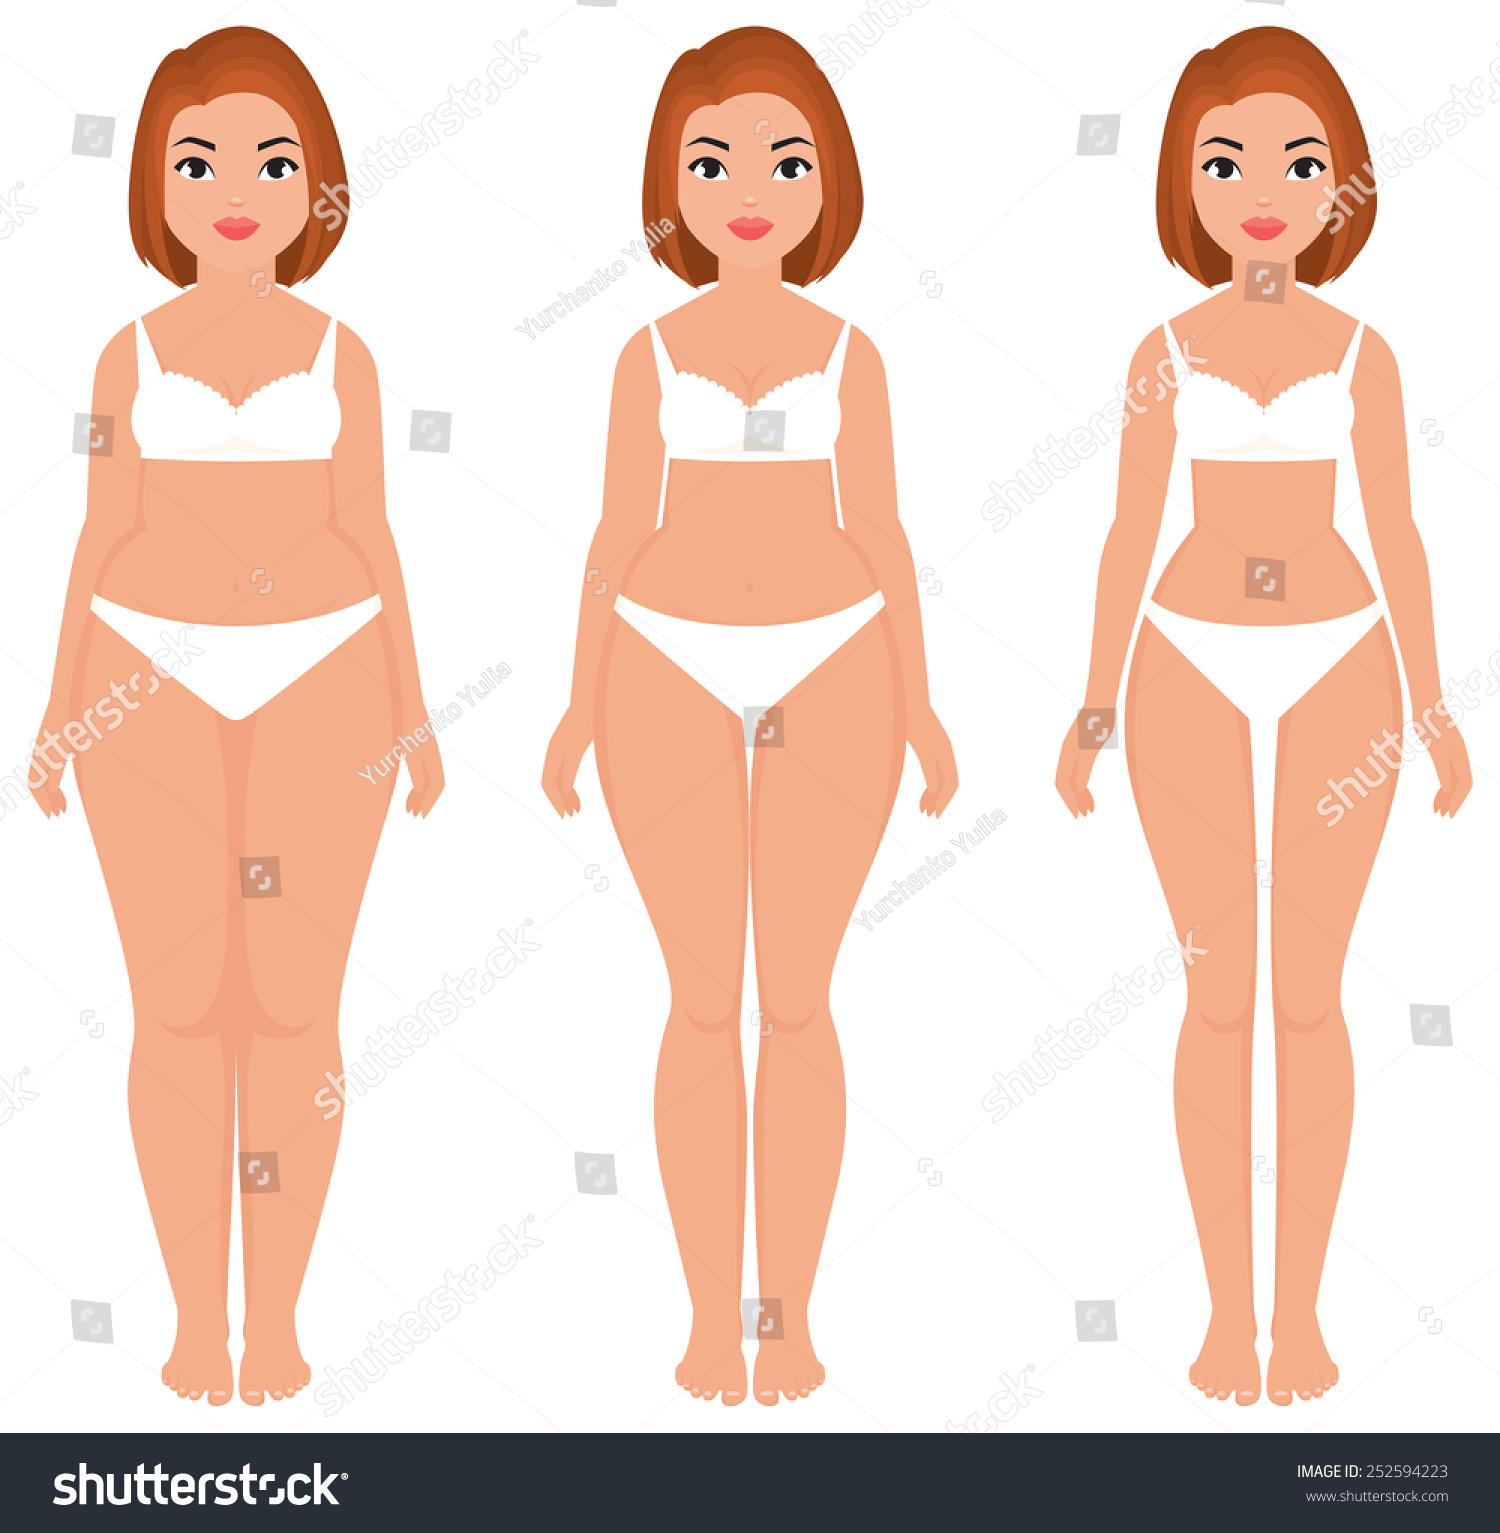 Stock Vector Cartoon Illustration Fat Slim Stock Vector